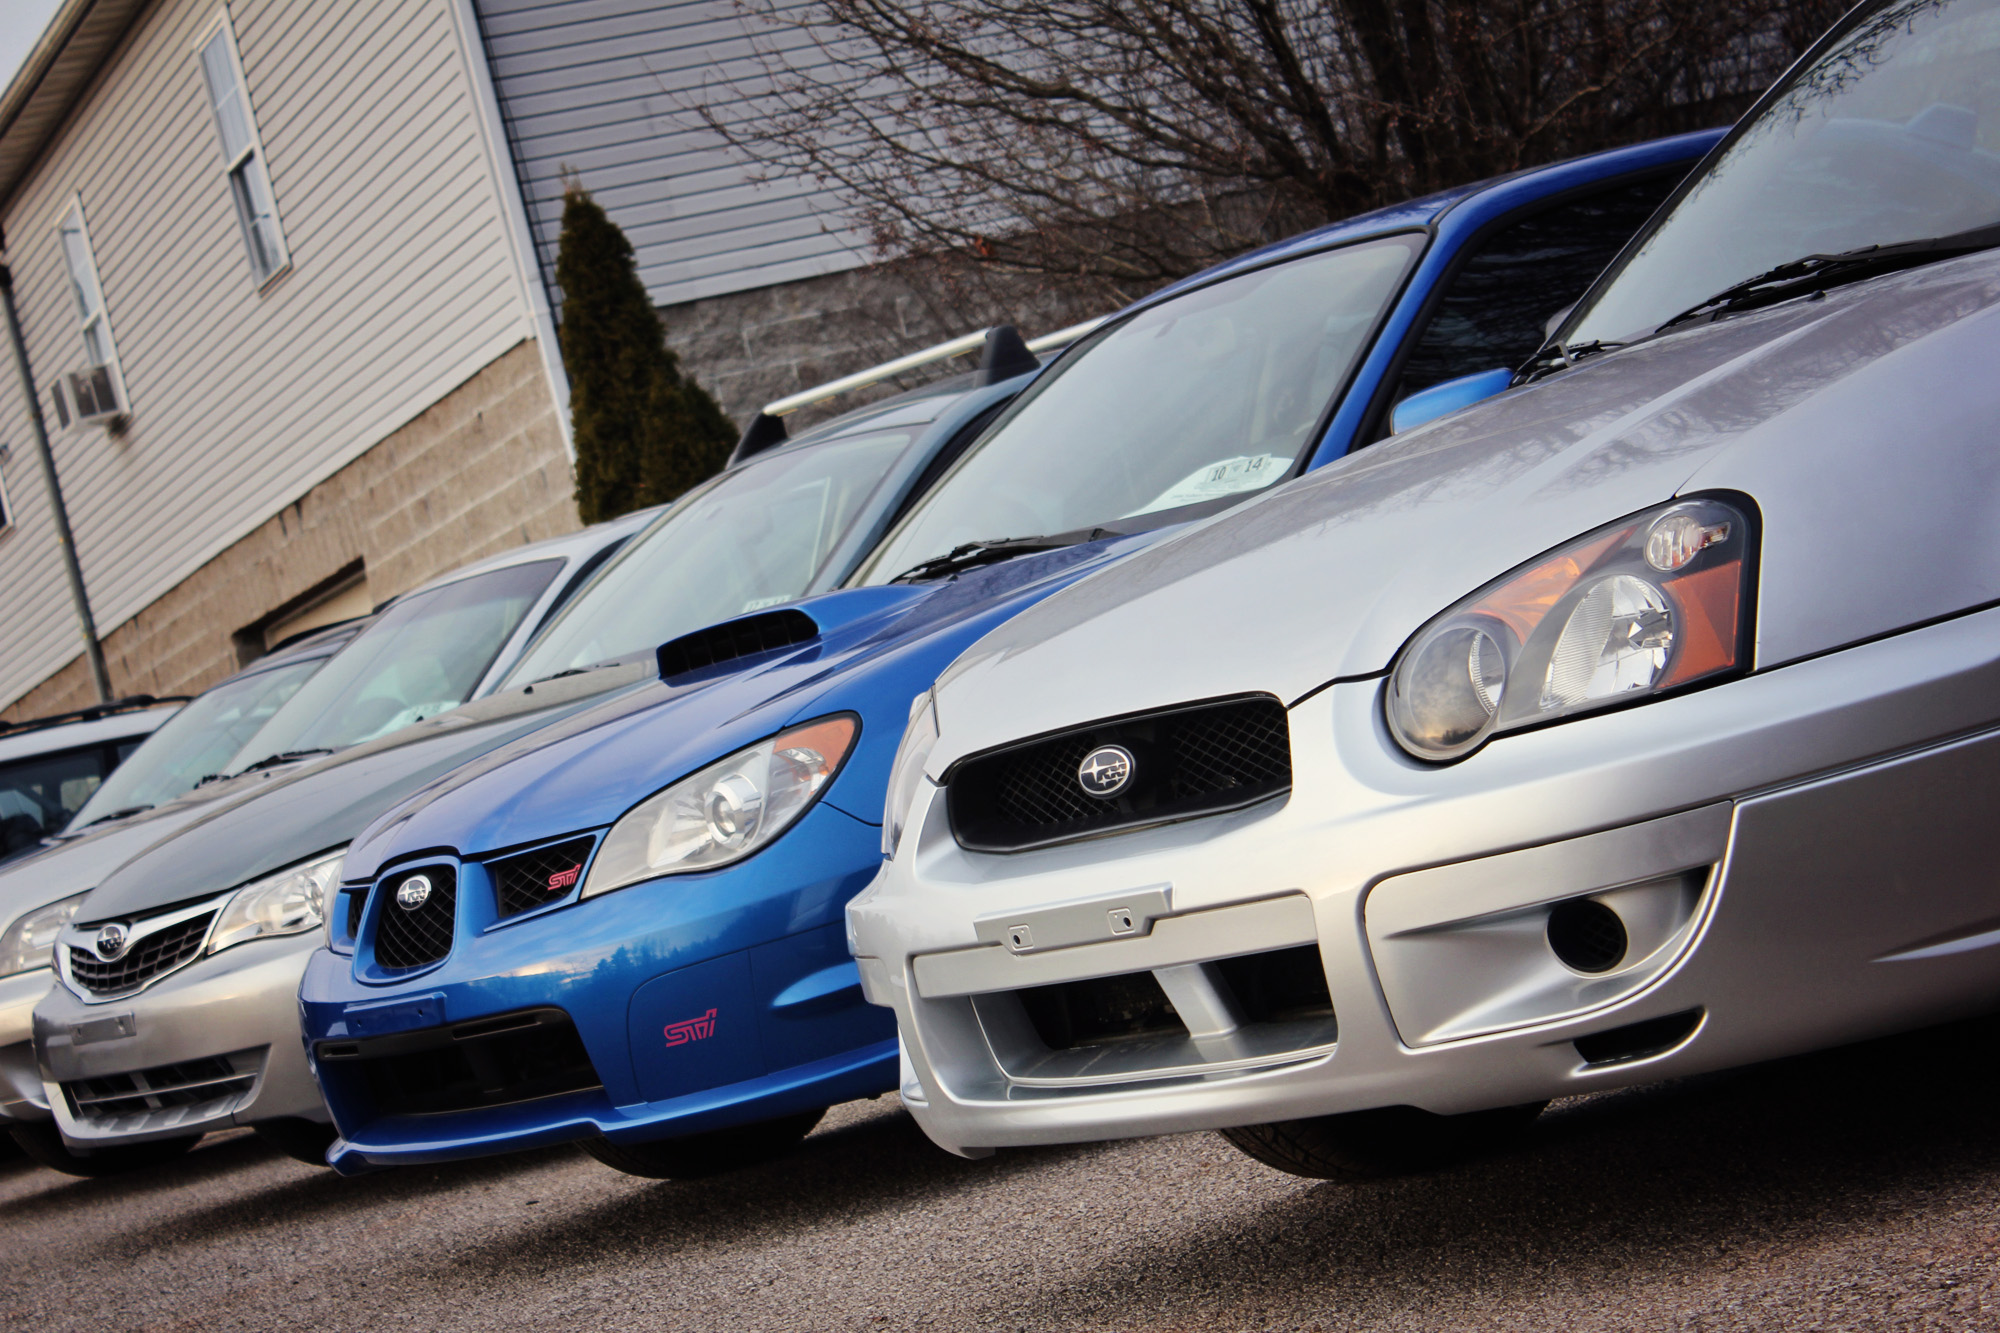 Tax season is coming – Check out our Rexconstructed Subarus!